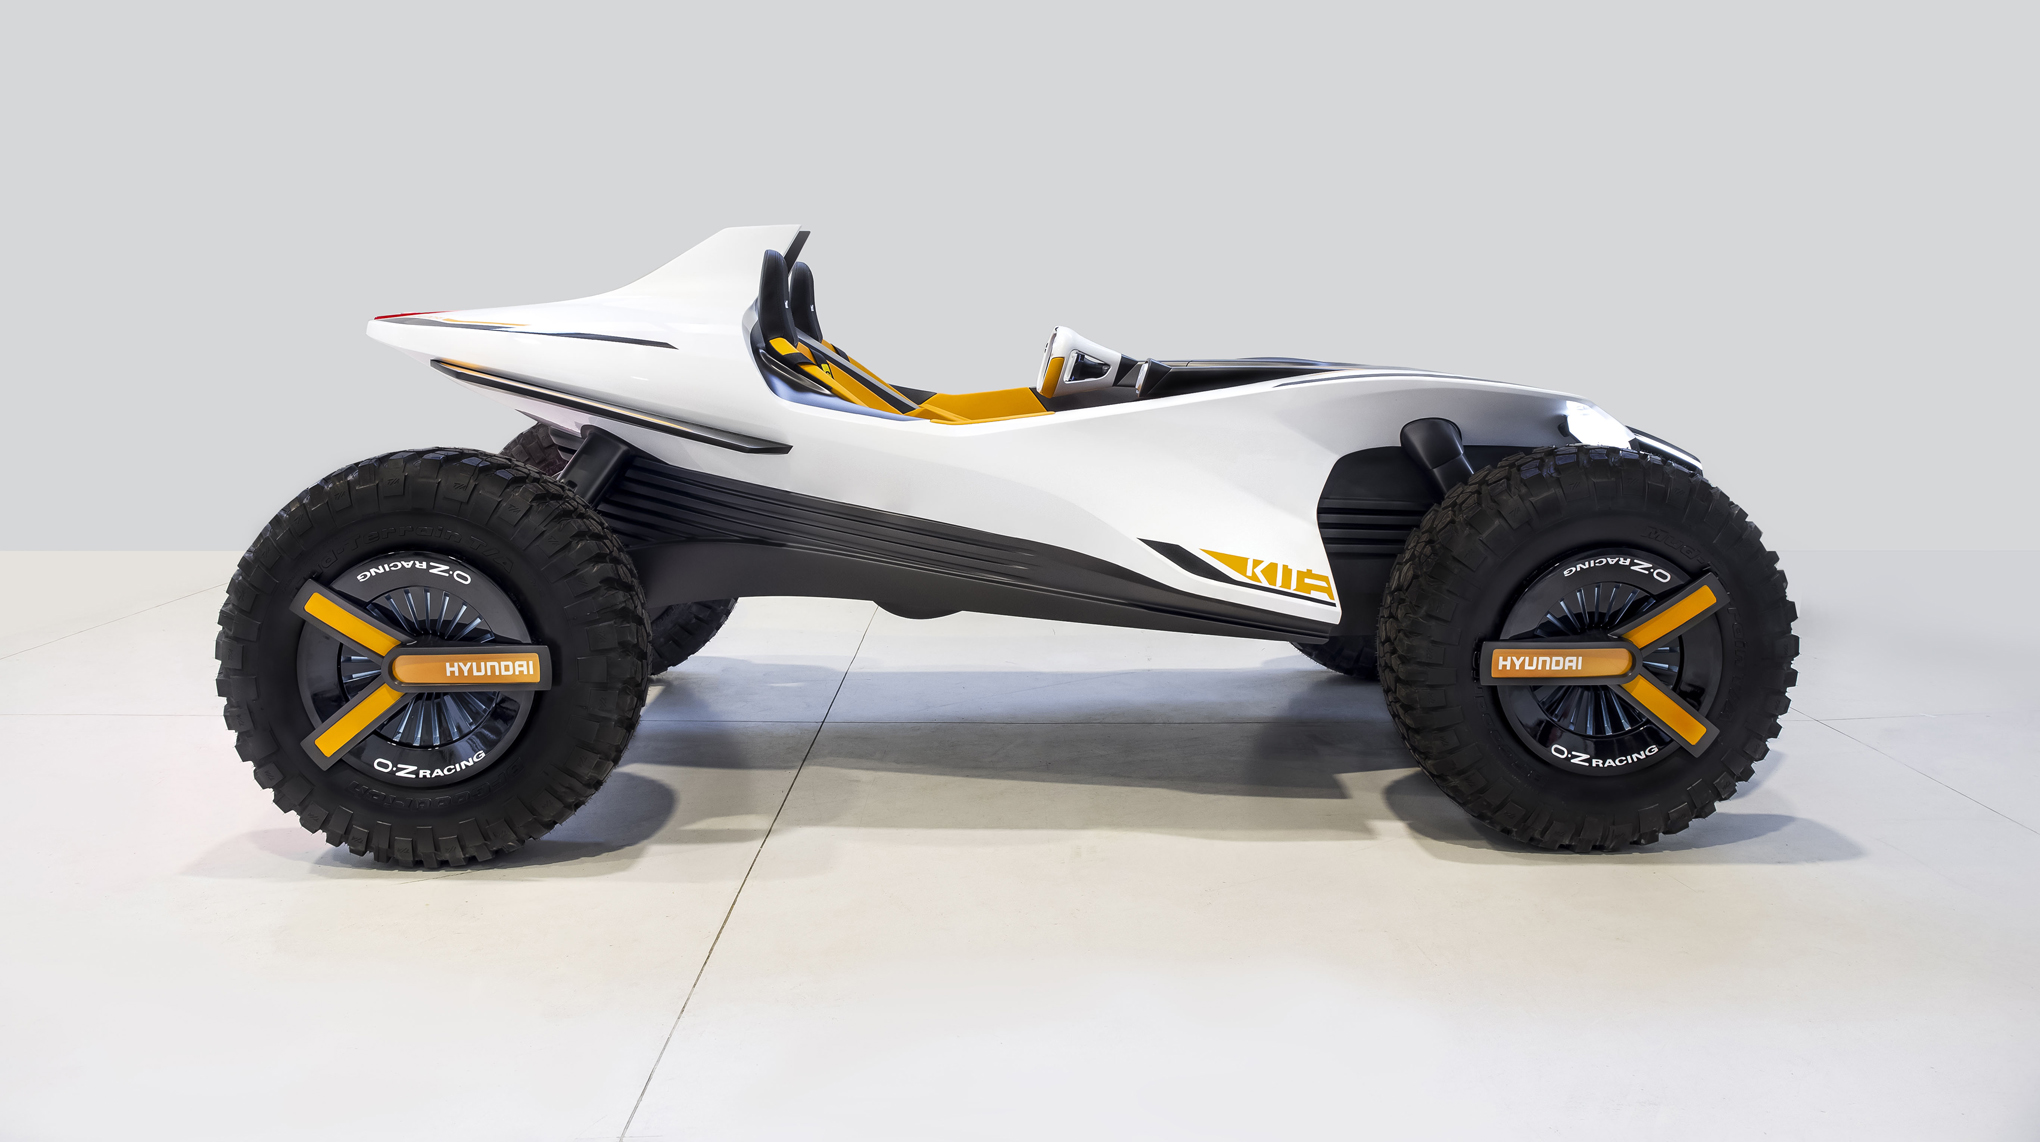 This Hyundai dune buggy concept also turns into a watercraft - The Verge